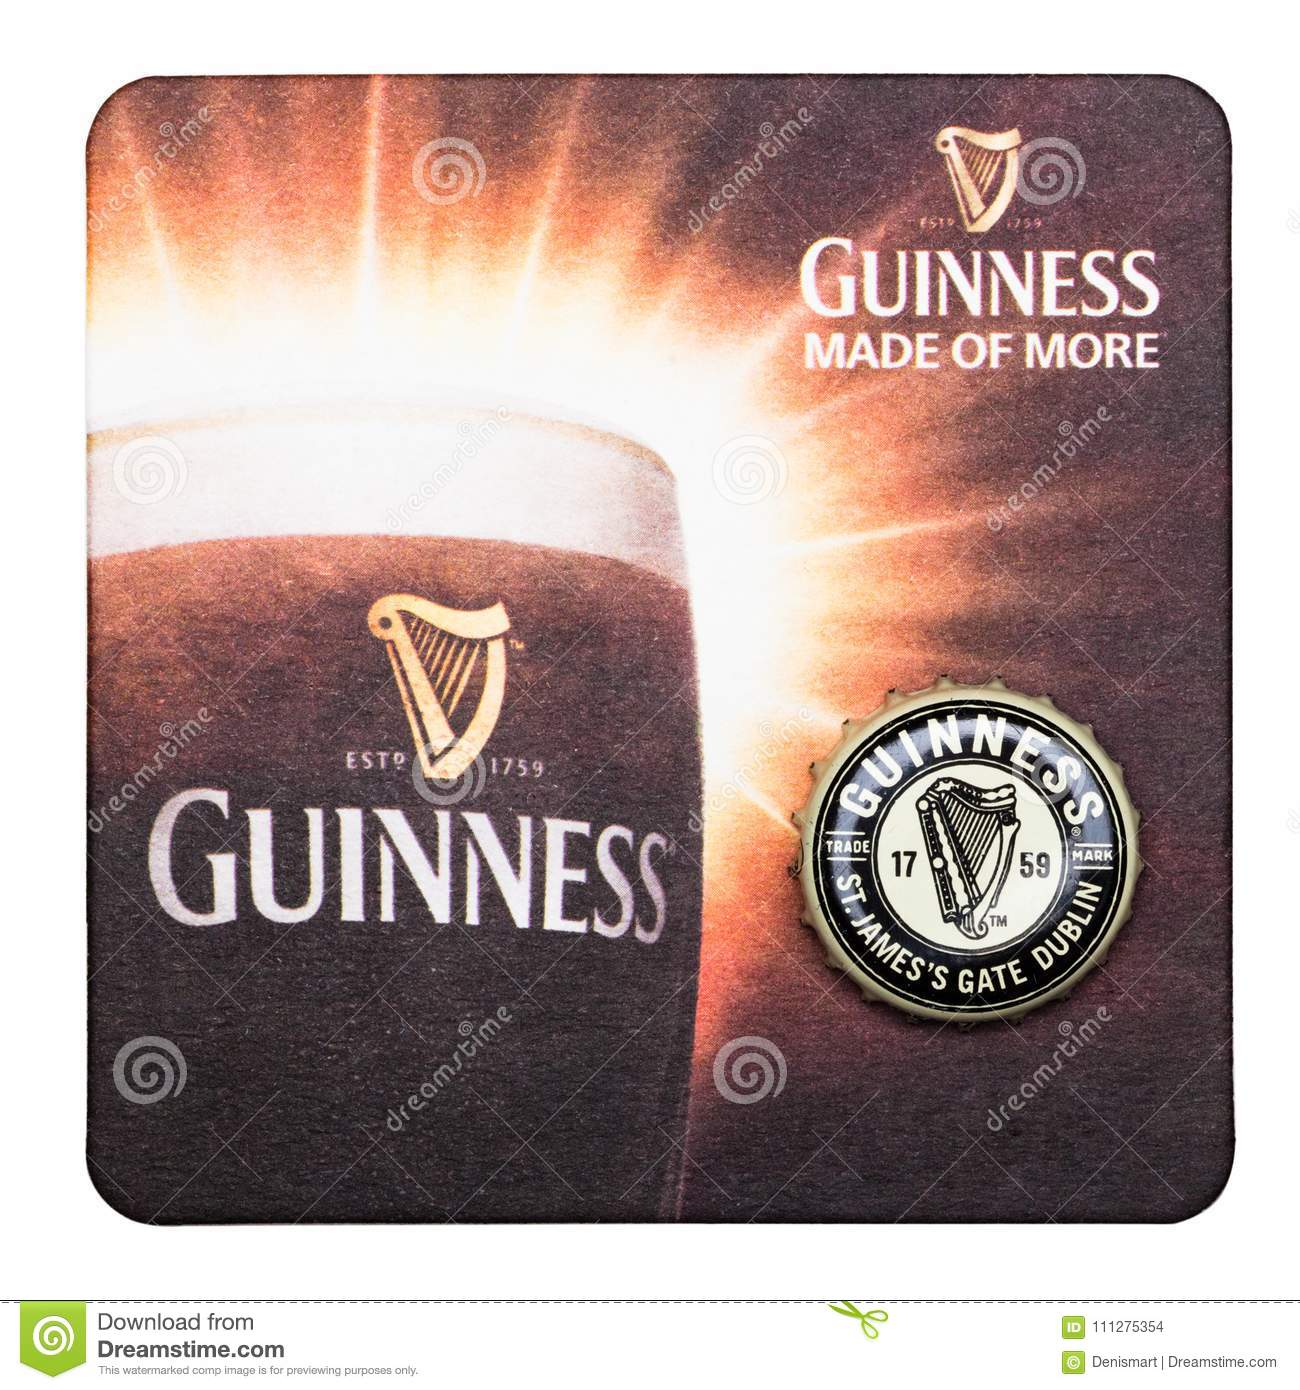 LONDON, UK - MARCH 01, 2018: Guinness draught beer original beermat coaster isolated on white.